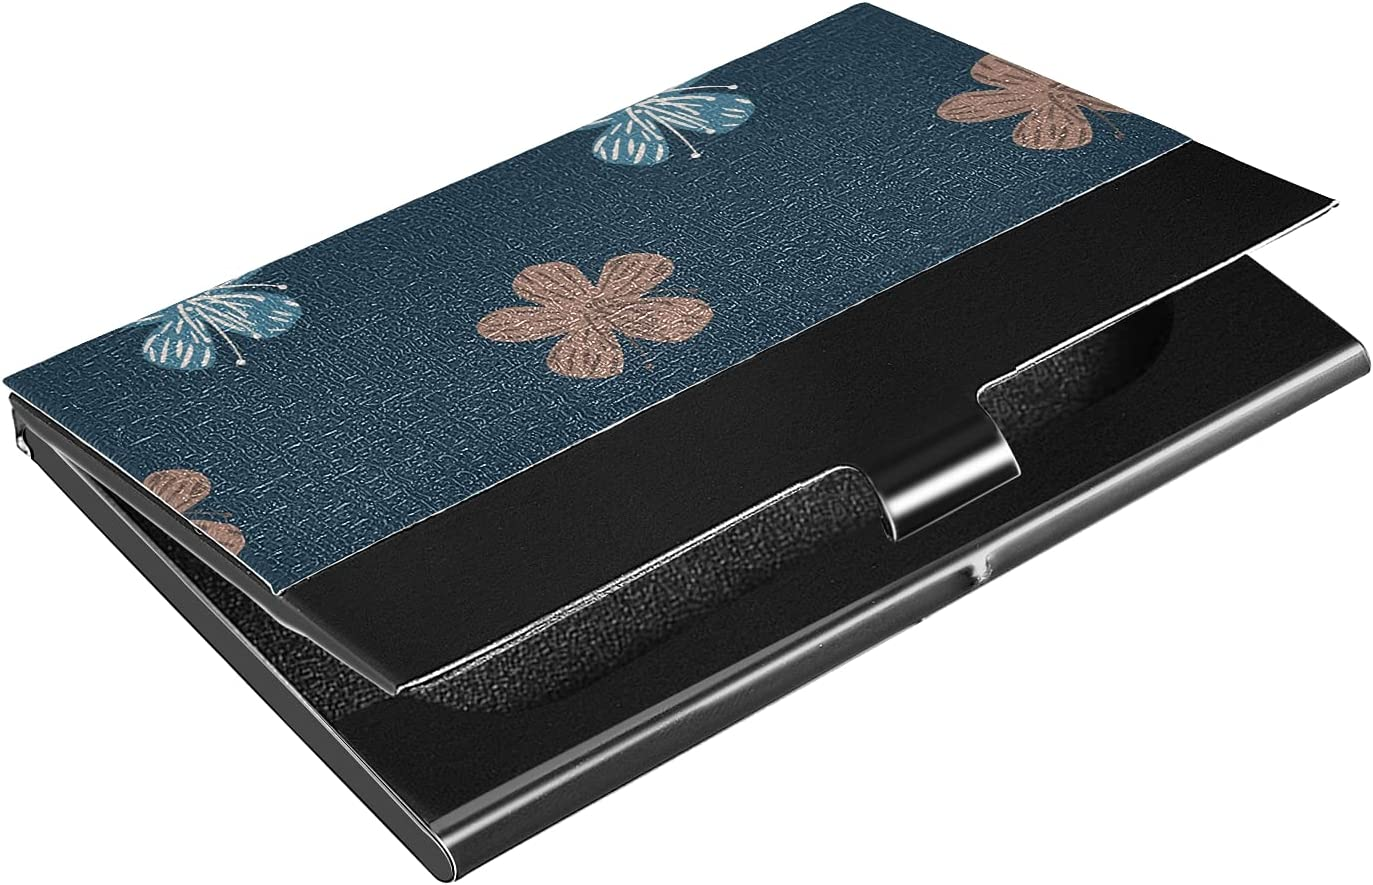 OTVEE Blue and Beige Flowers Business Card Holder Wallet Stainless Steel & Leather Pocket Business Card Case Organizer Slim Name Card ID Card Holders Credit Card Wallet Carrier Purse for Women Men